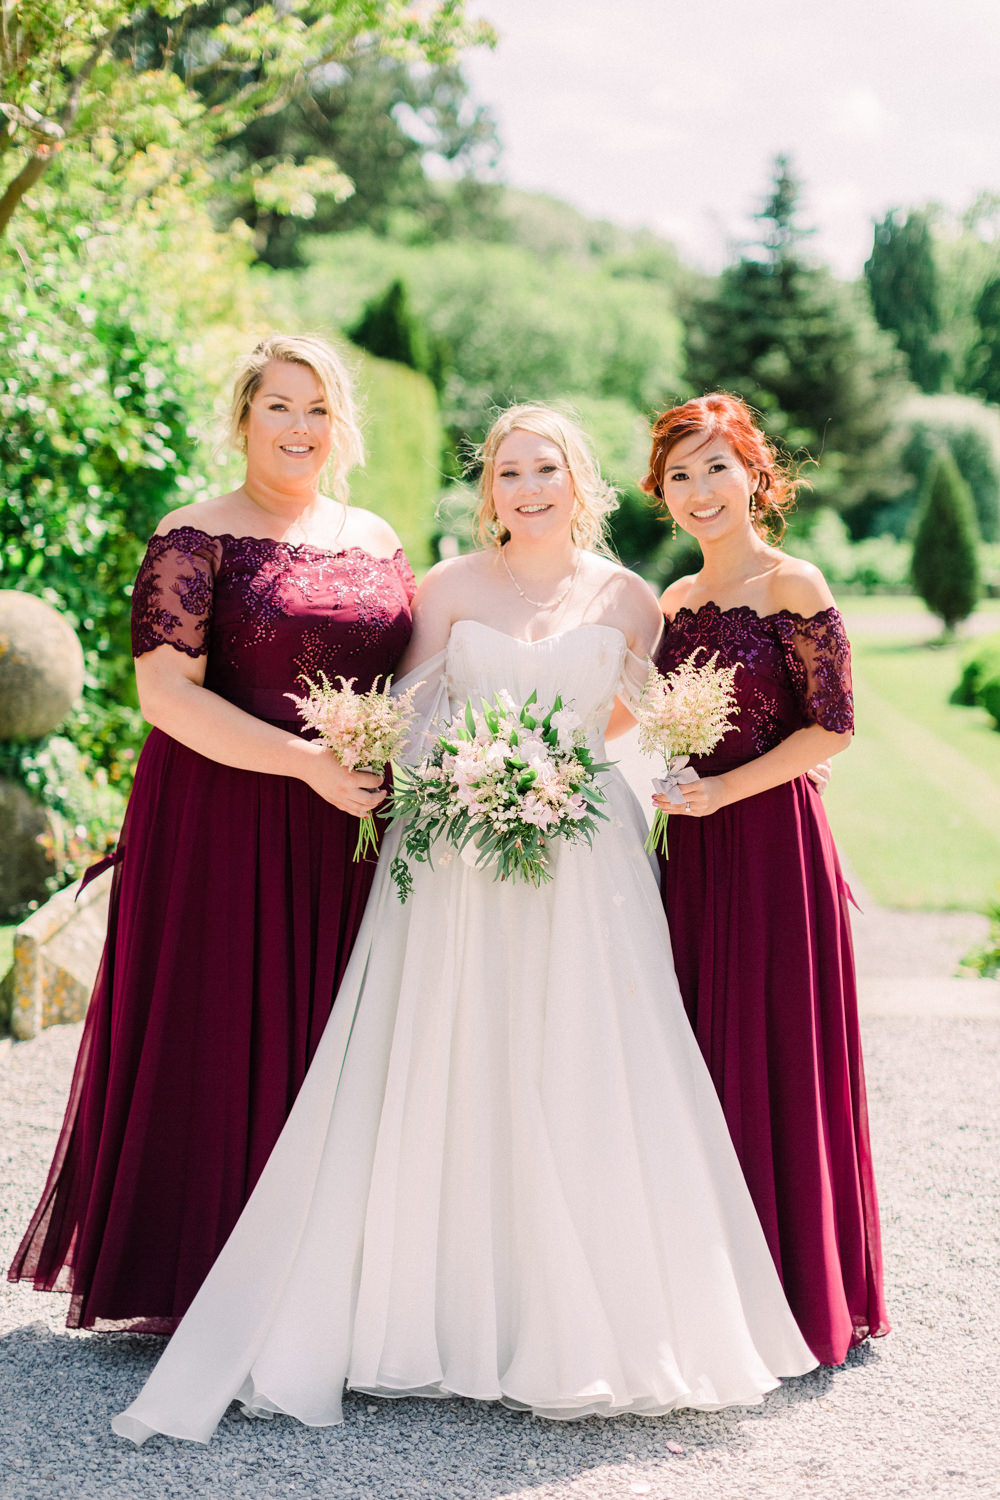 Red Burgundy Coast Bridesmaid Dress Bridesmaid Dresses Lace Tortworth Court Wedding Sanshine Photography